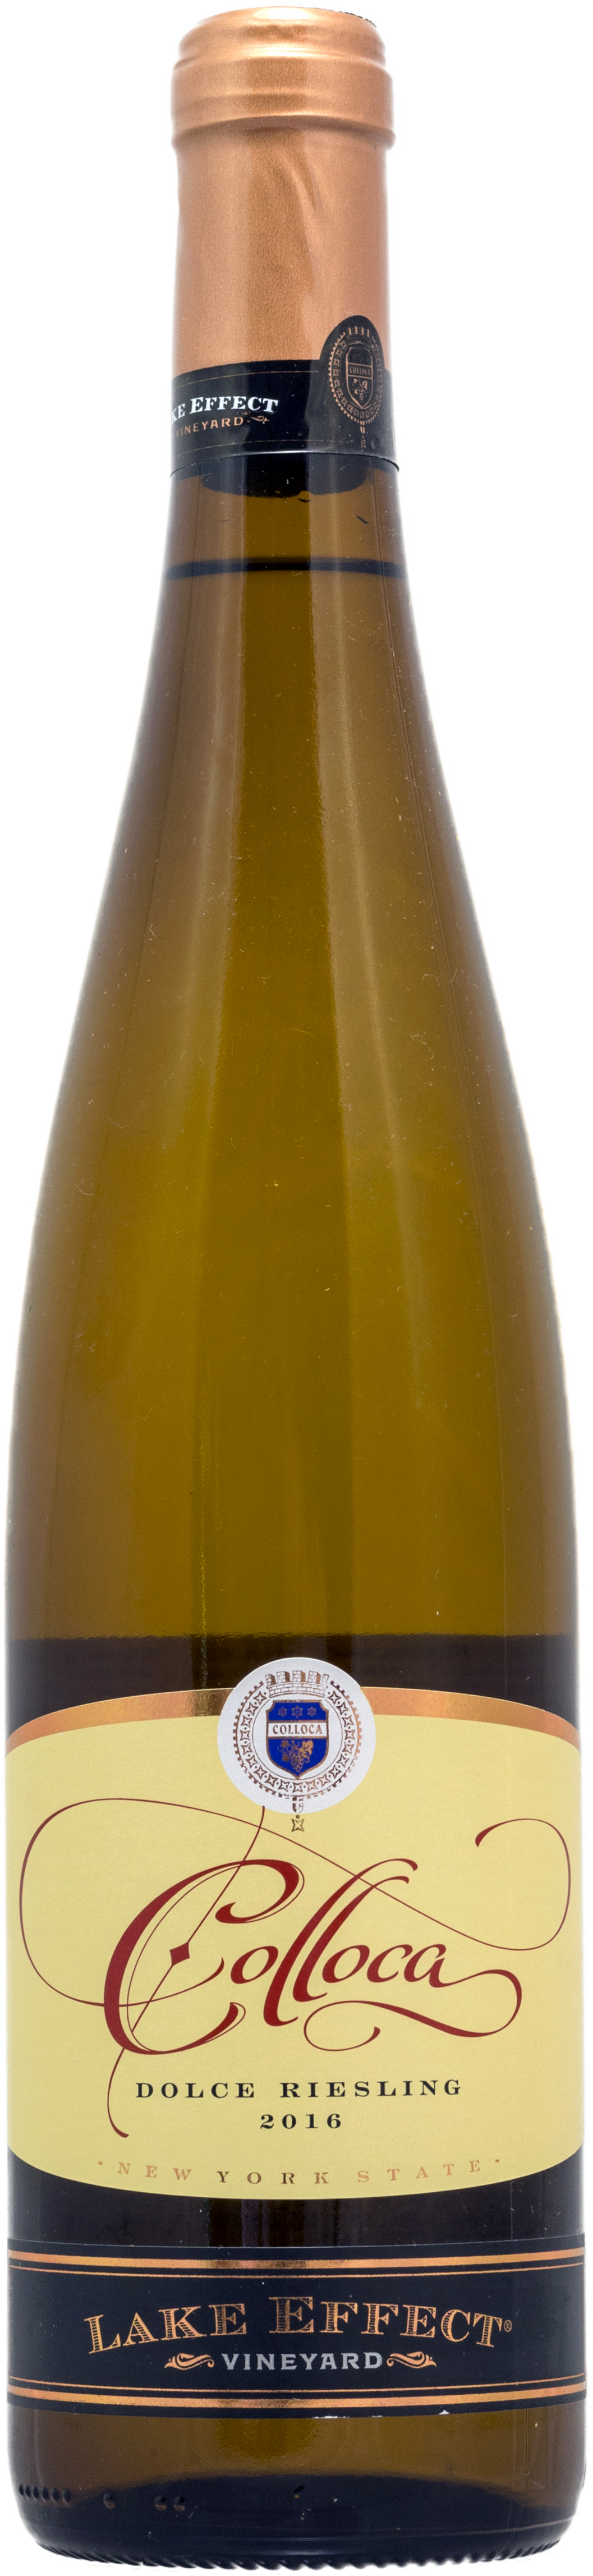 2016 Colloca Lake Effect Vineyard® Dolce Riesling -